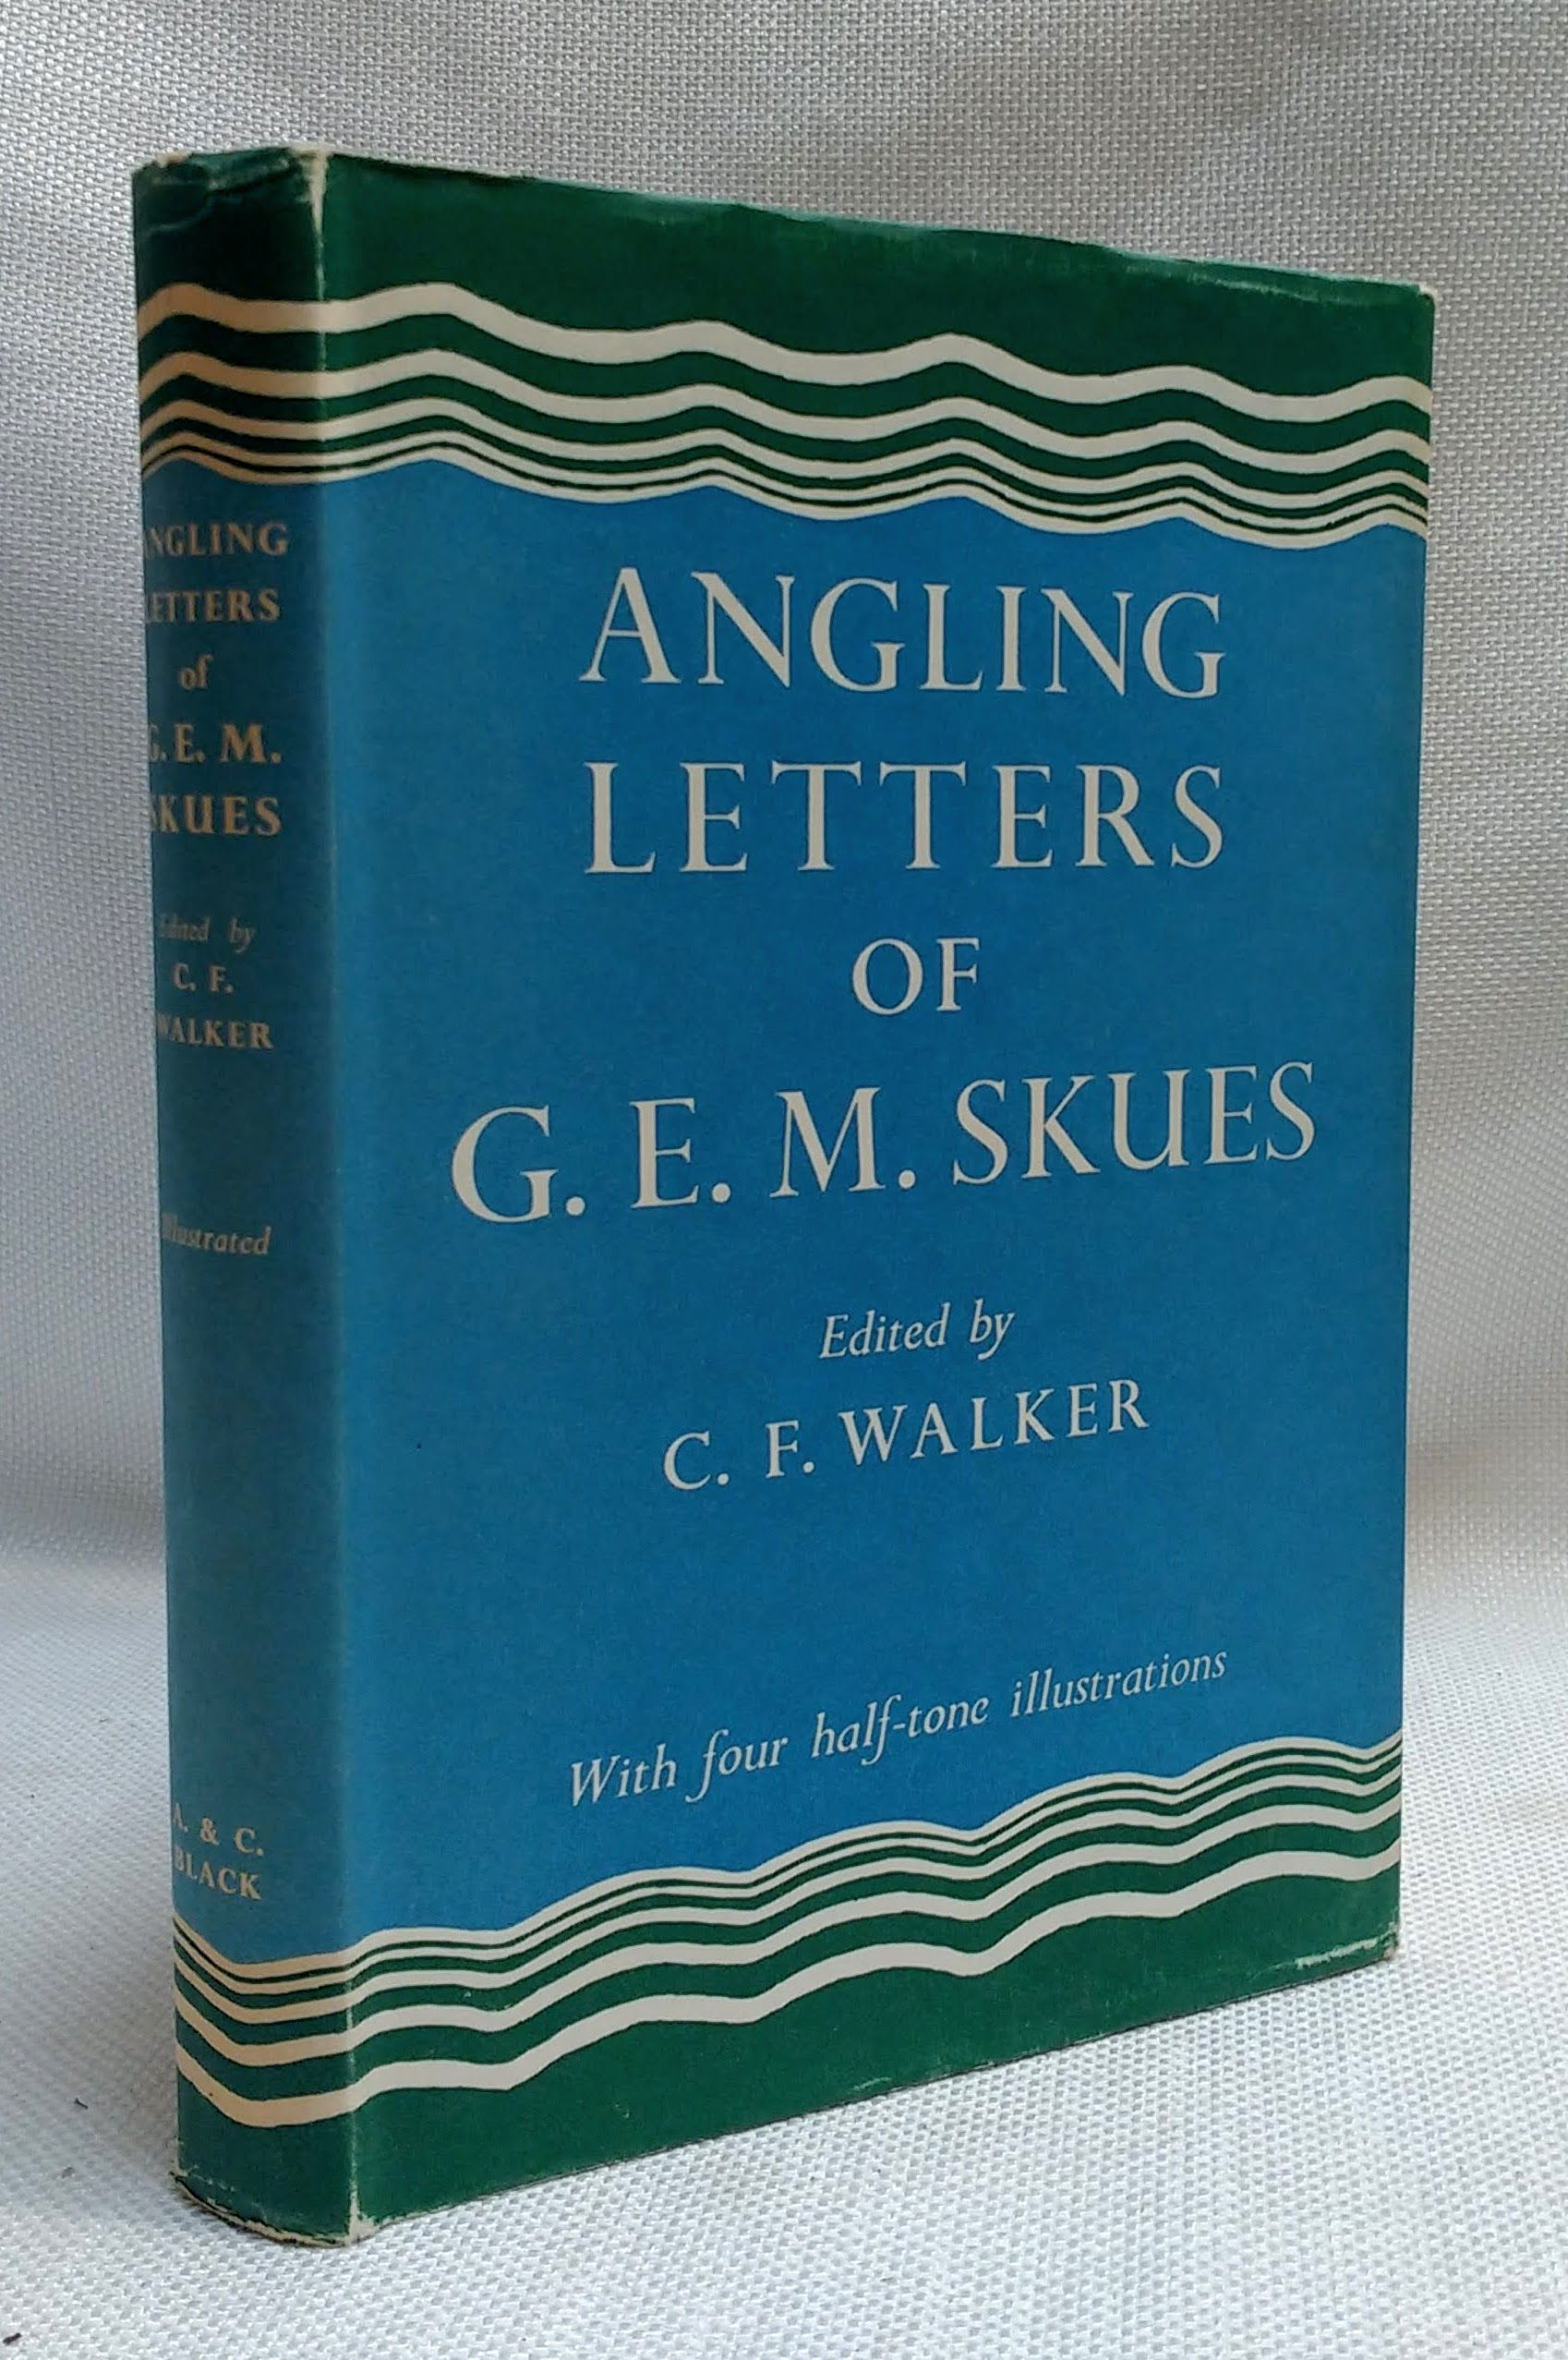 The Angling Letters of G.E.M.Skues, Skues, G. E. M.; C. F. Walker [Editor]